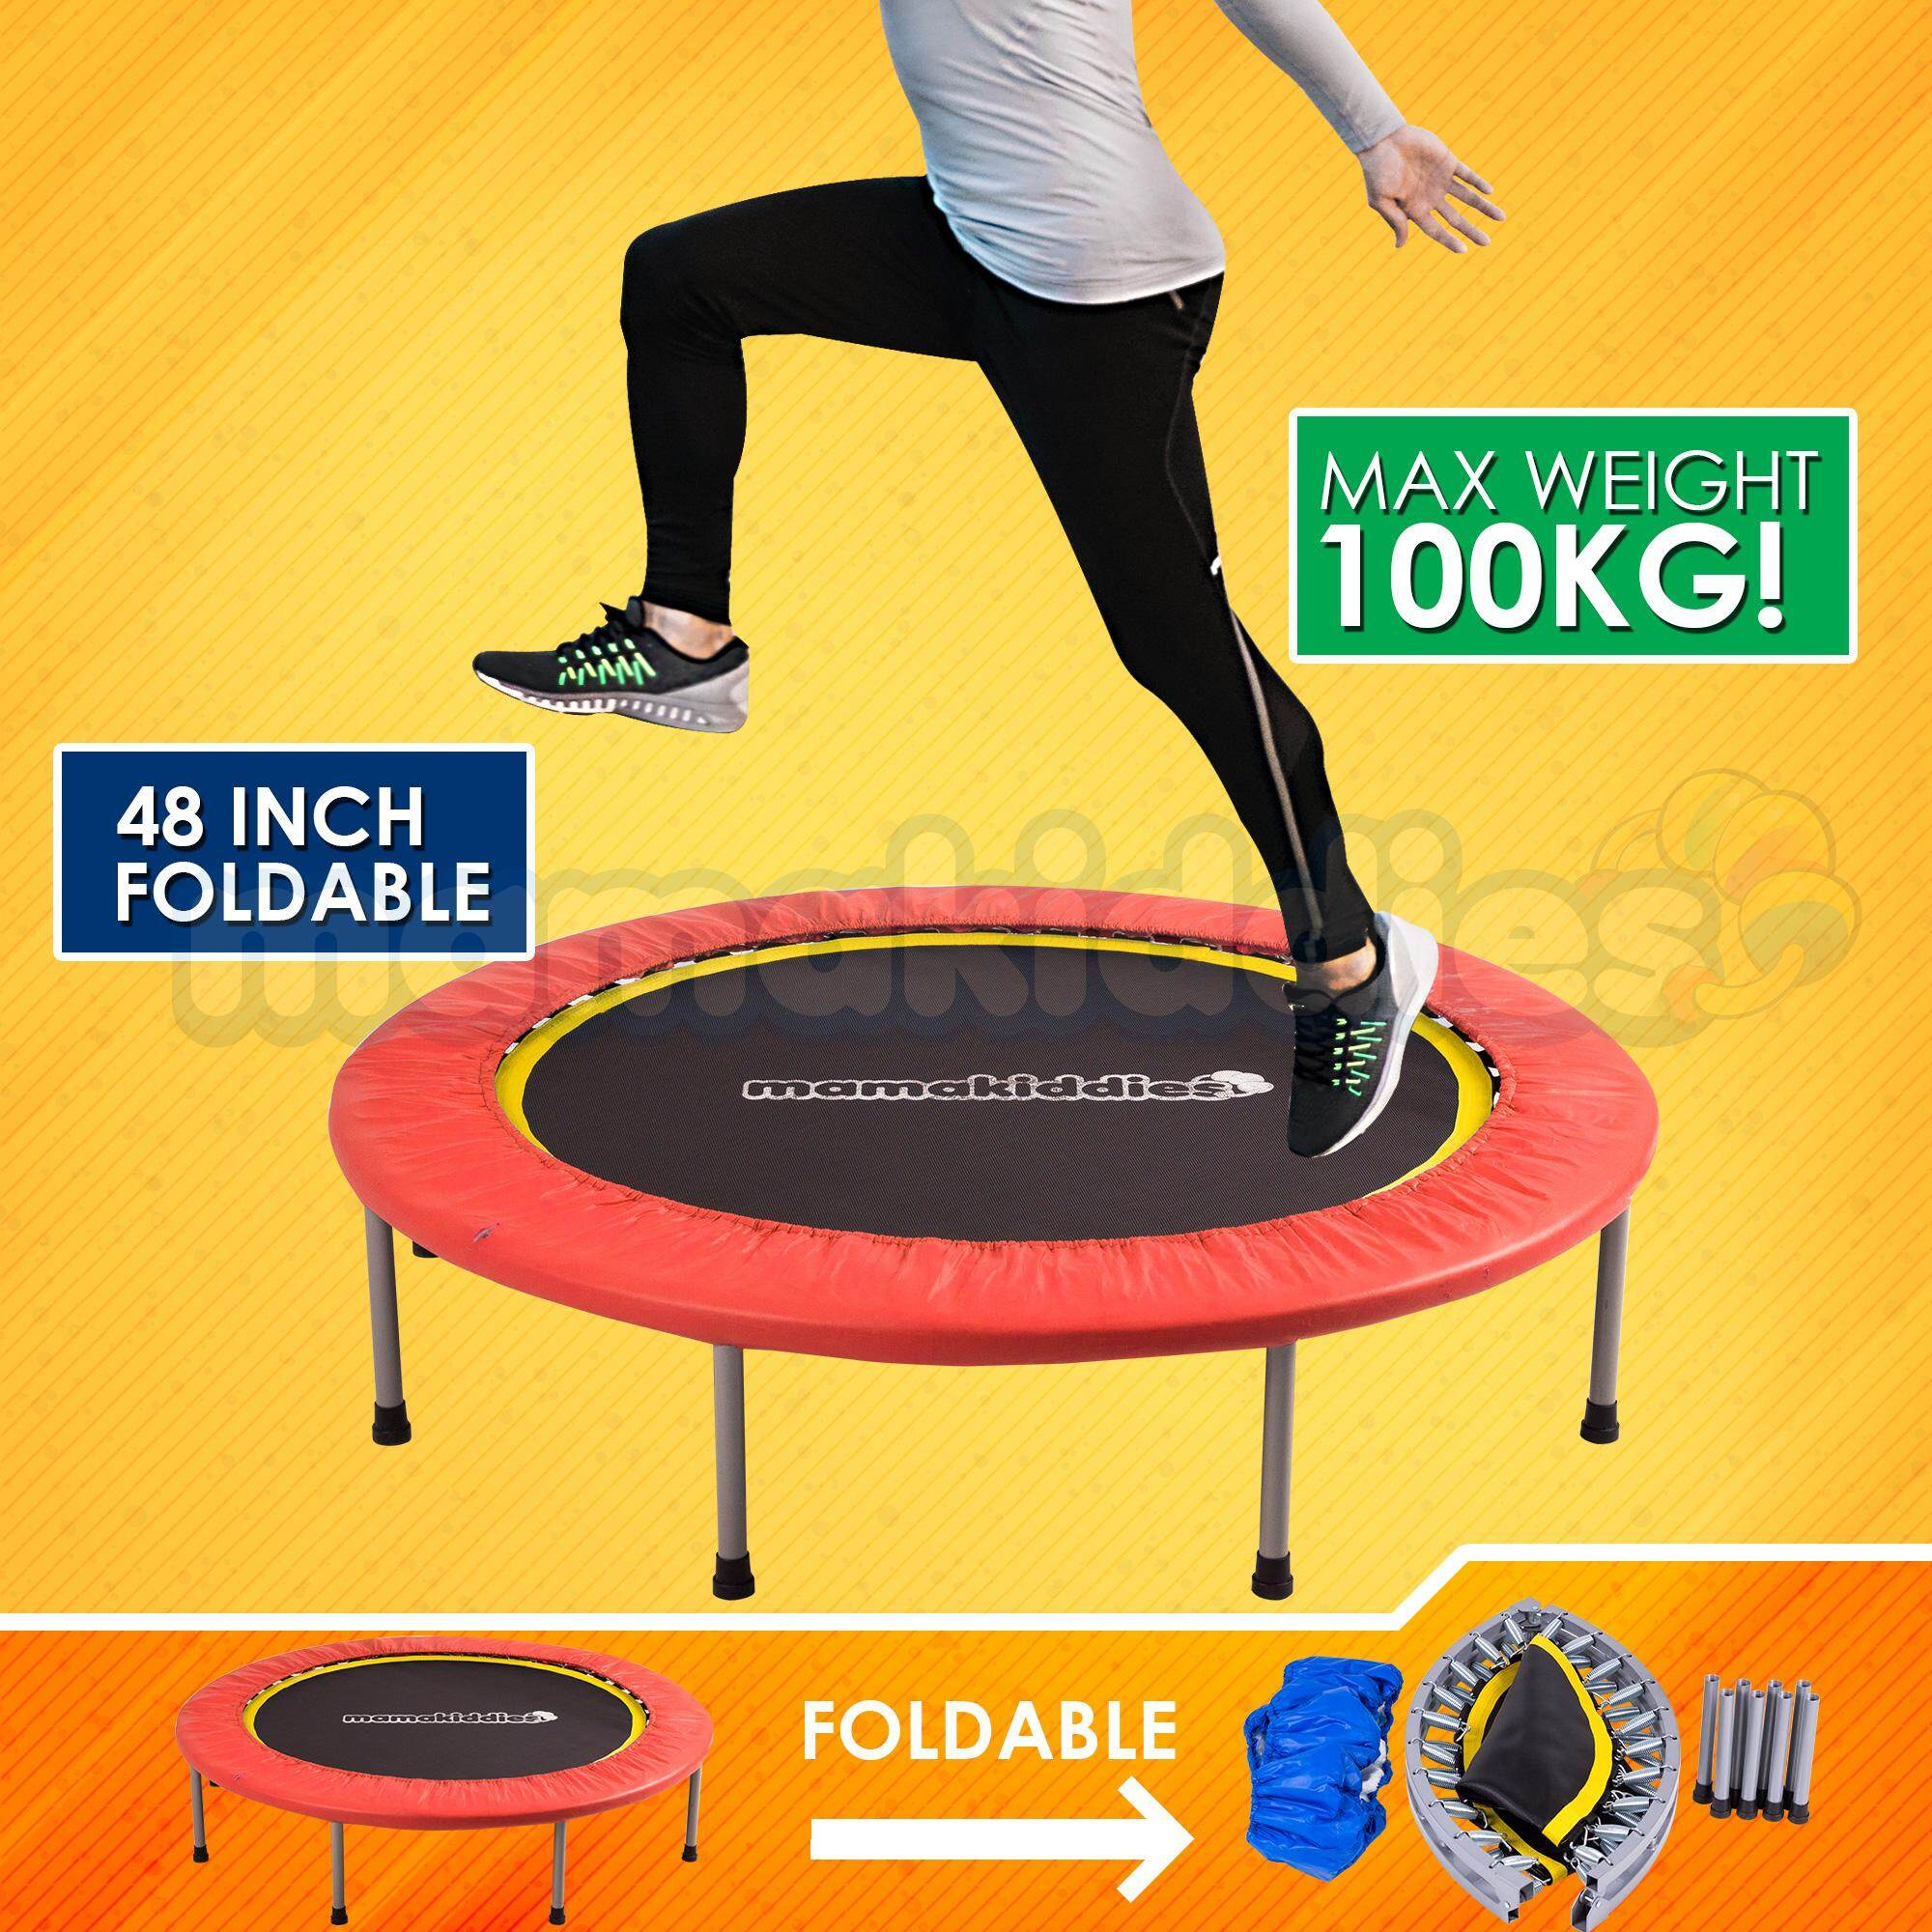 Mamakiddies Premium 48 Inch 4 Folds Foldable Kids & Adult Trampoline Fitness Slimming, Anti Stress,jumping Bouncer,physical Therapy For Autism & Exercise-Red By Mamakiddies.